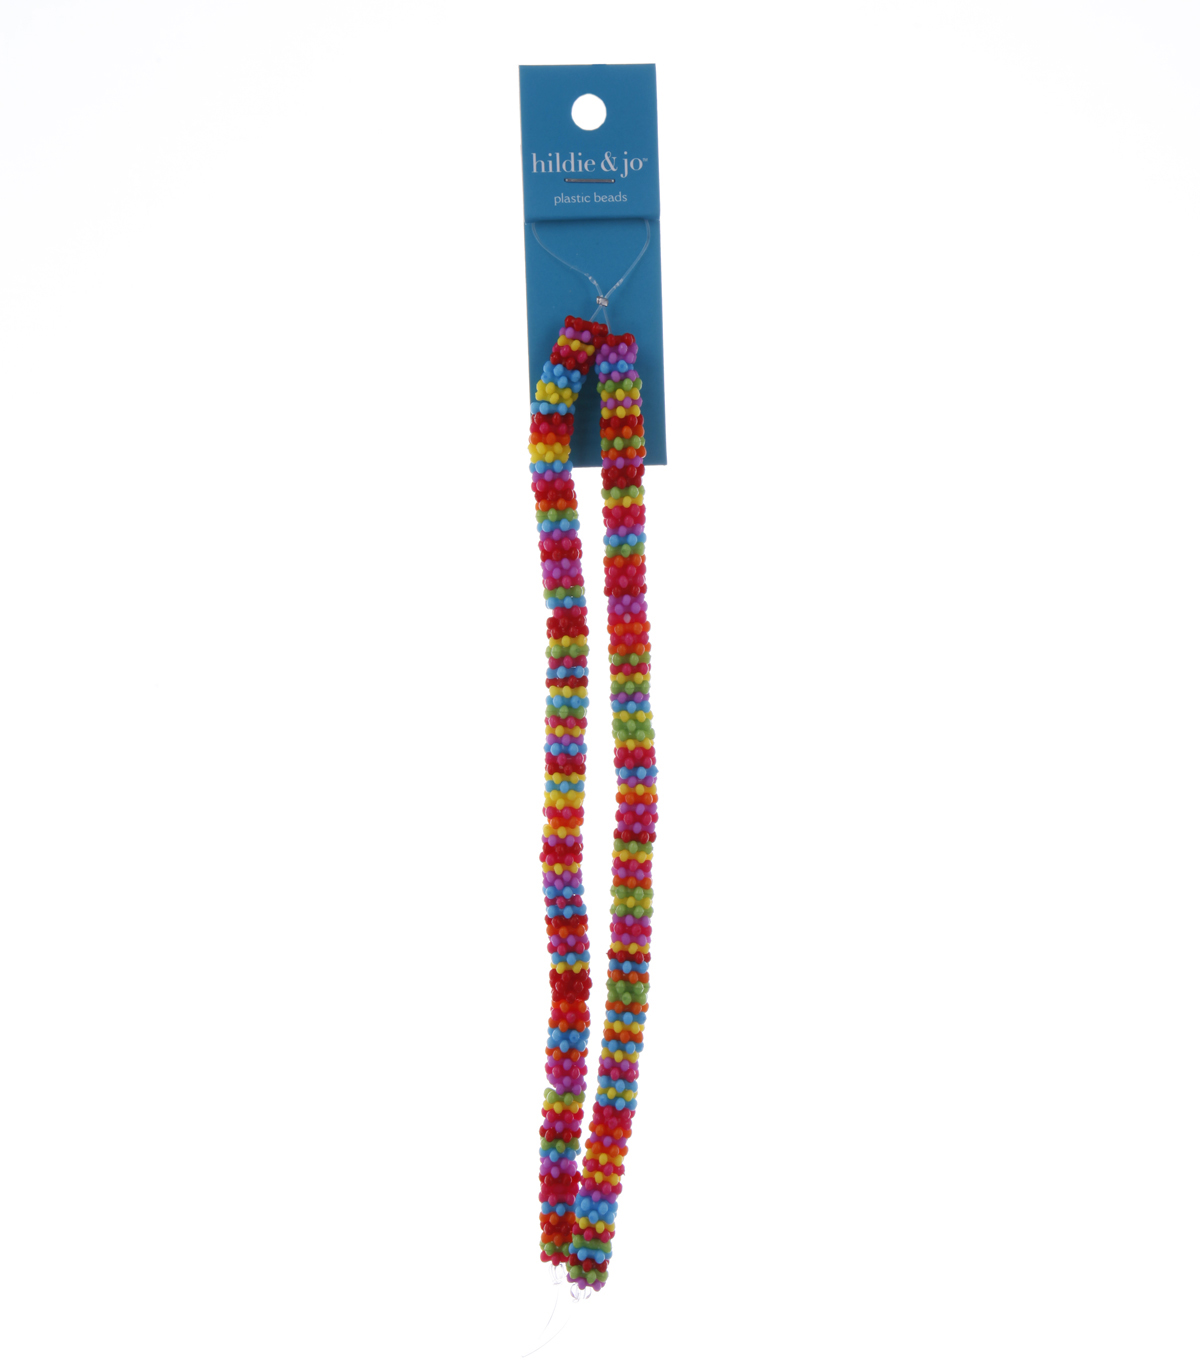 Blue Moon Beads Strand 14\u0022Plastic Rondelle Flower, Multi